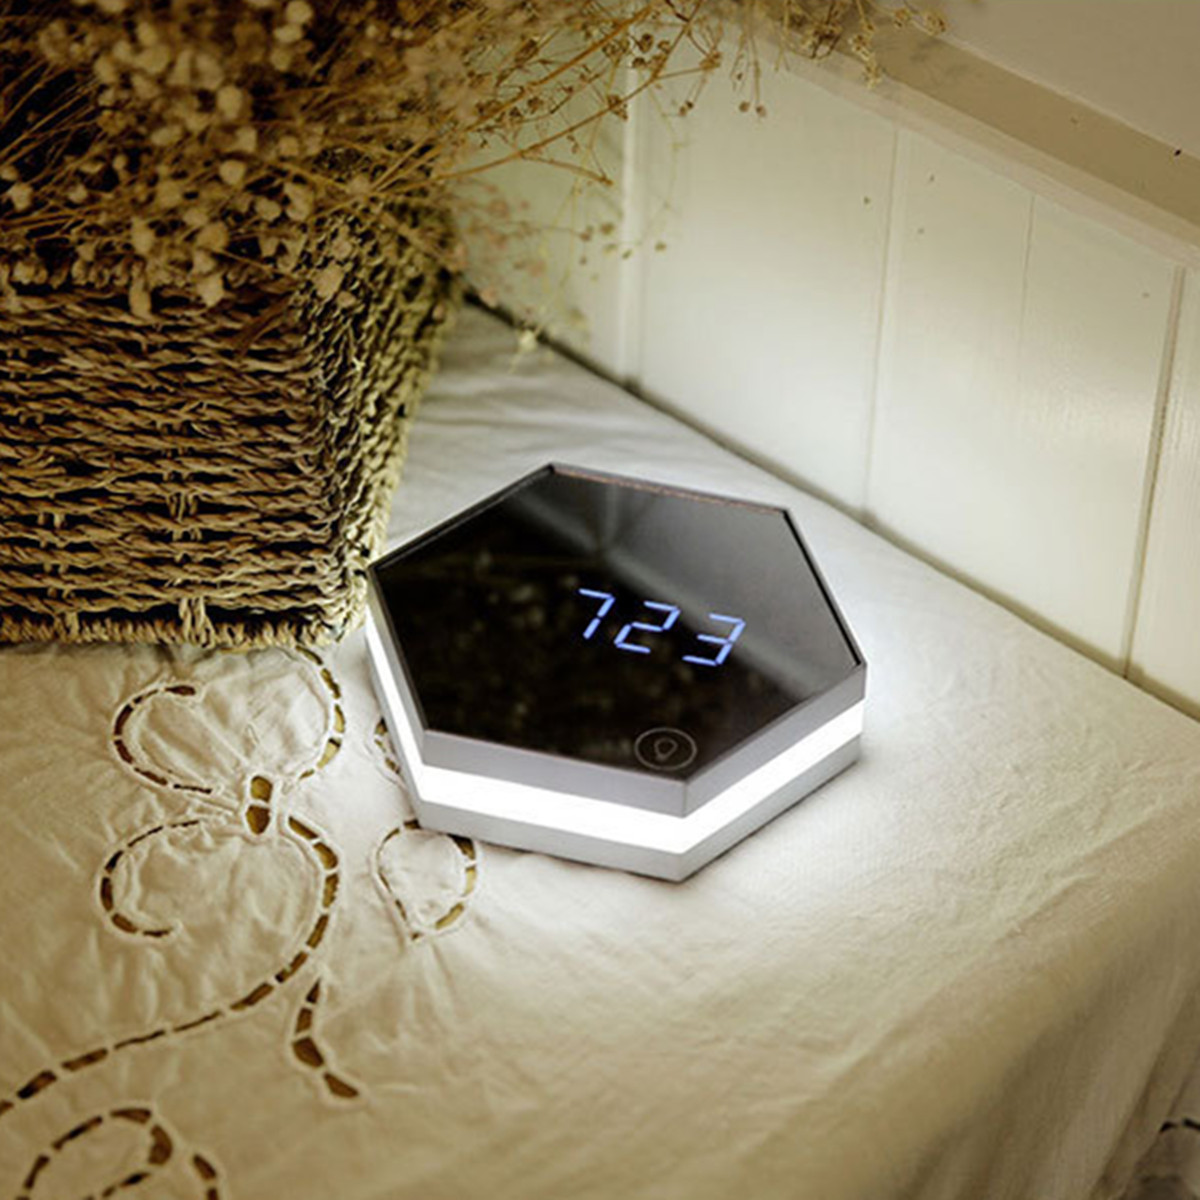 Multifunction LED Display Make Up Mirror Alarm Clock Night Light Desktop Thermometer Display Clock